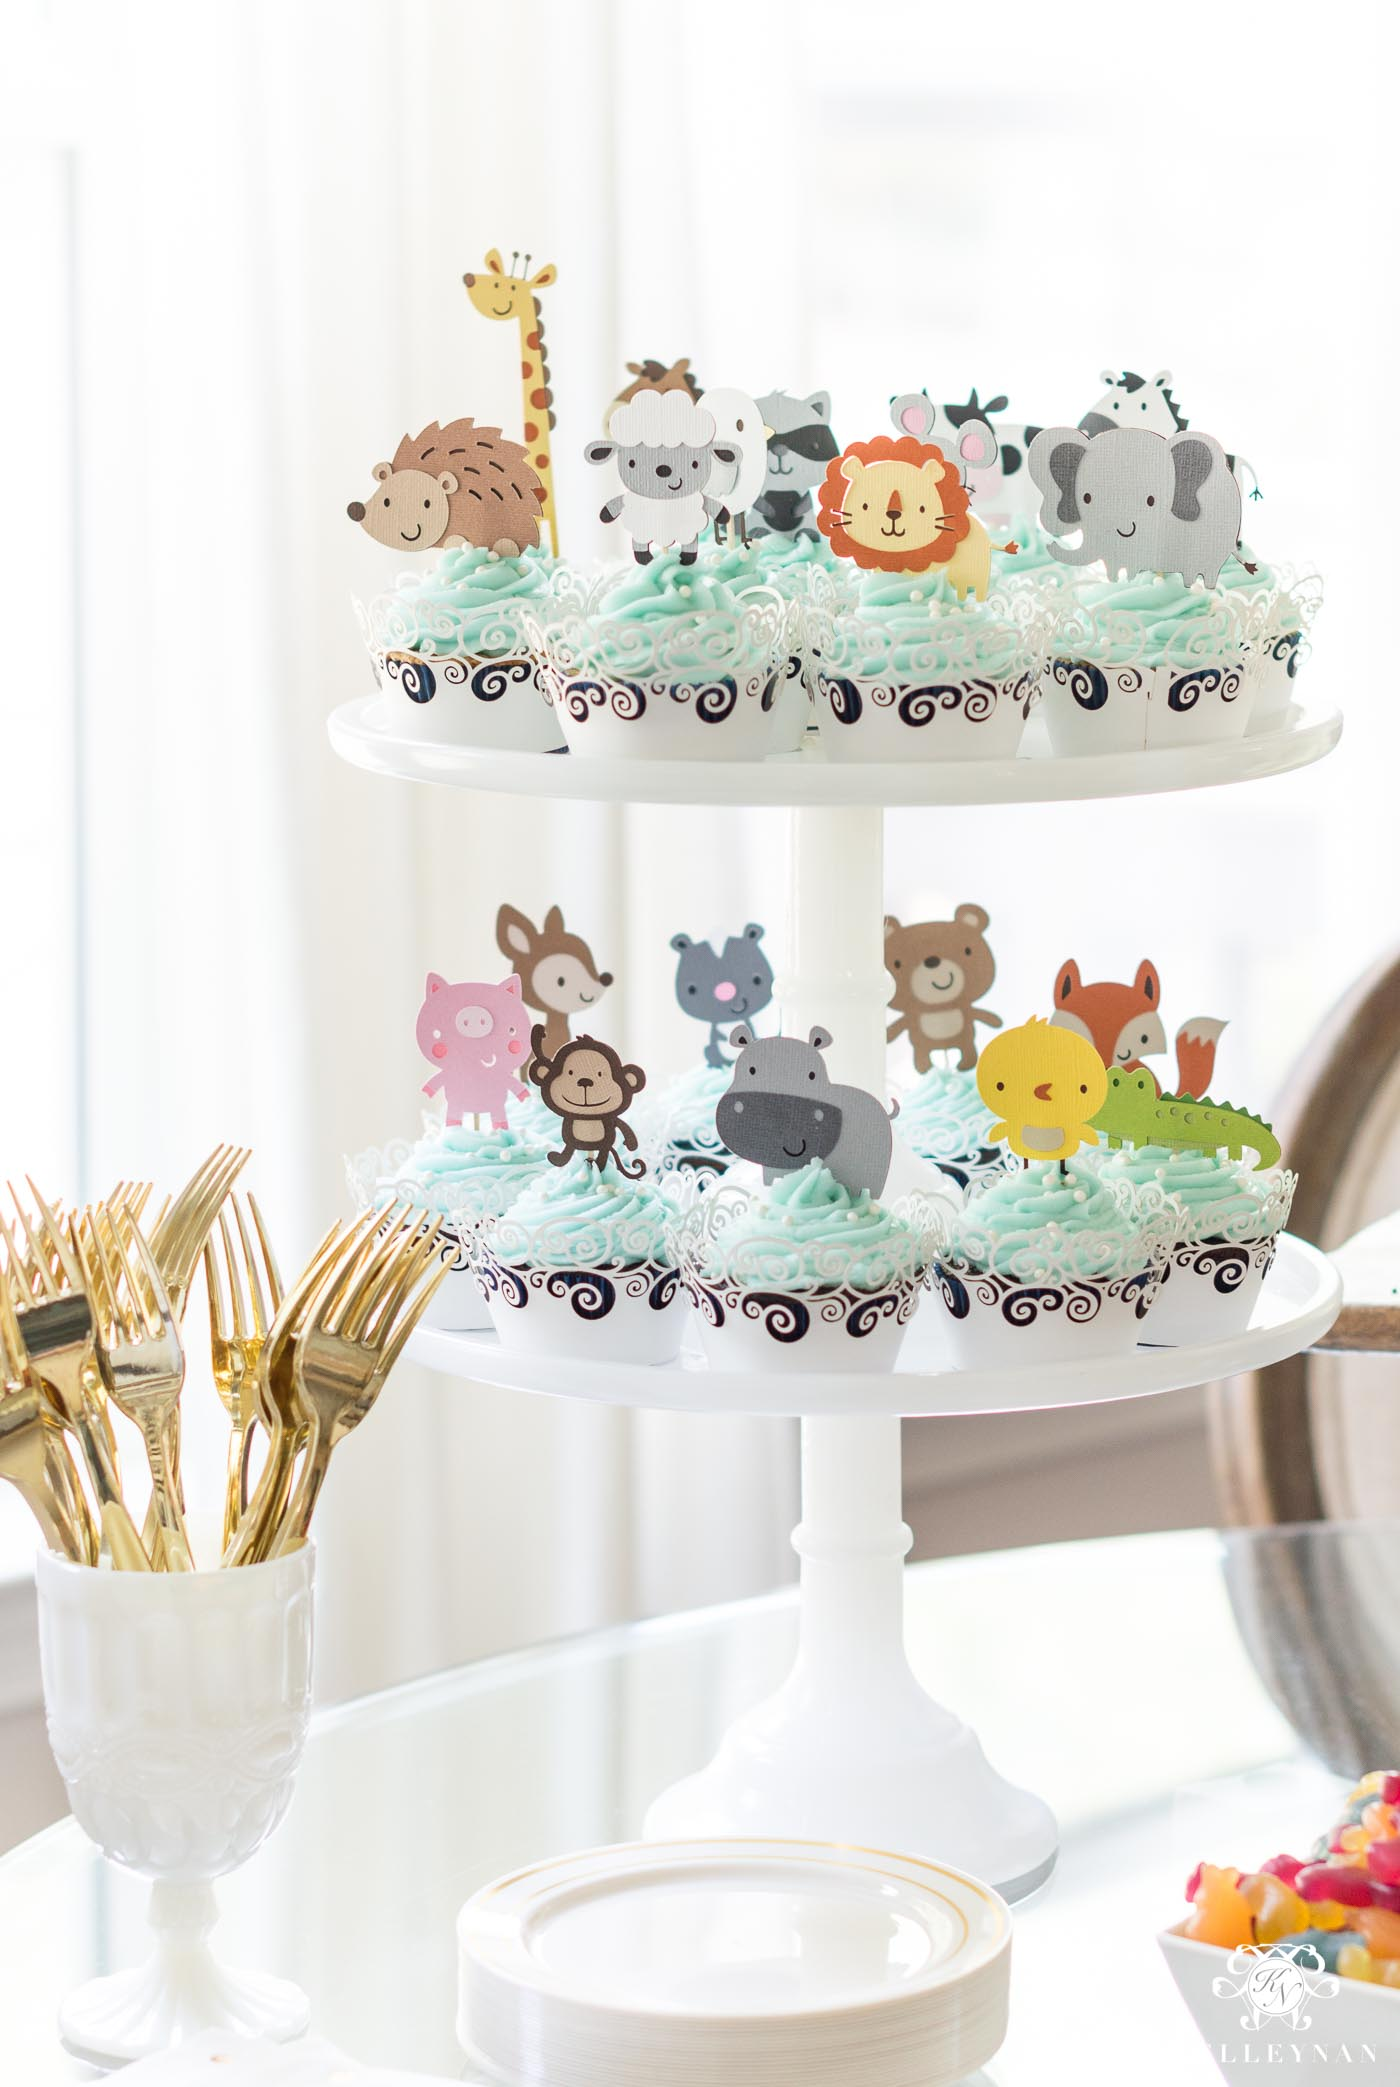 Noah's Ark themed animal cupcake tower for twin baby shower